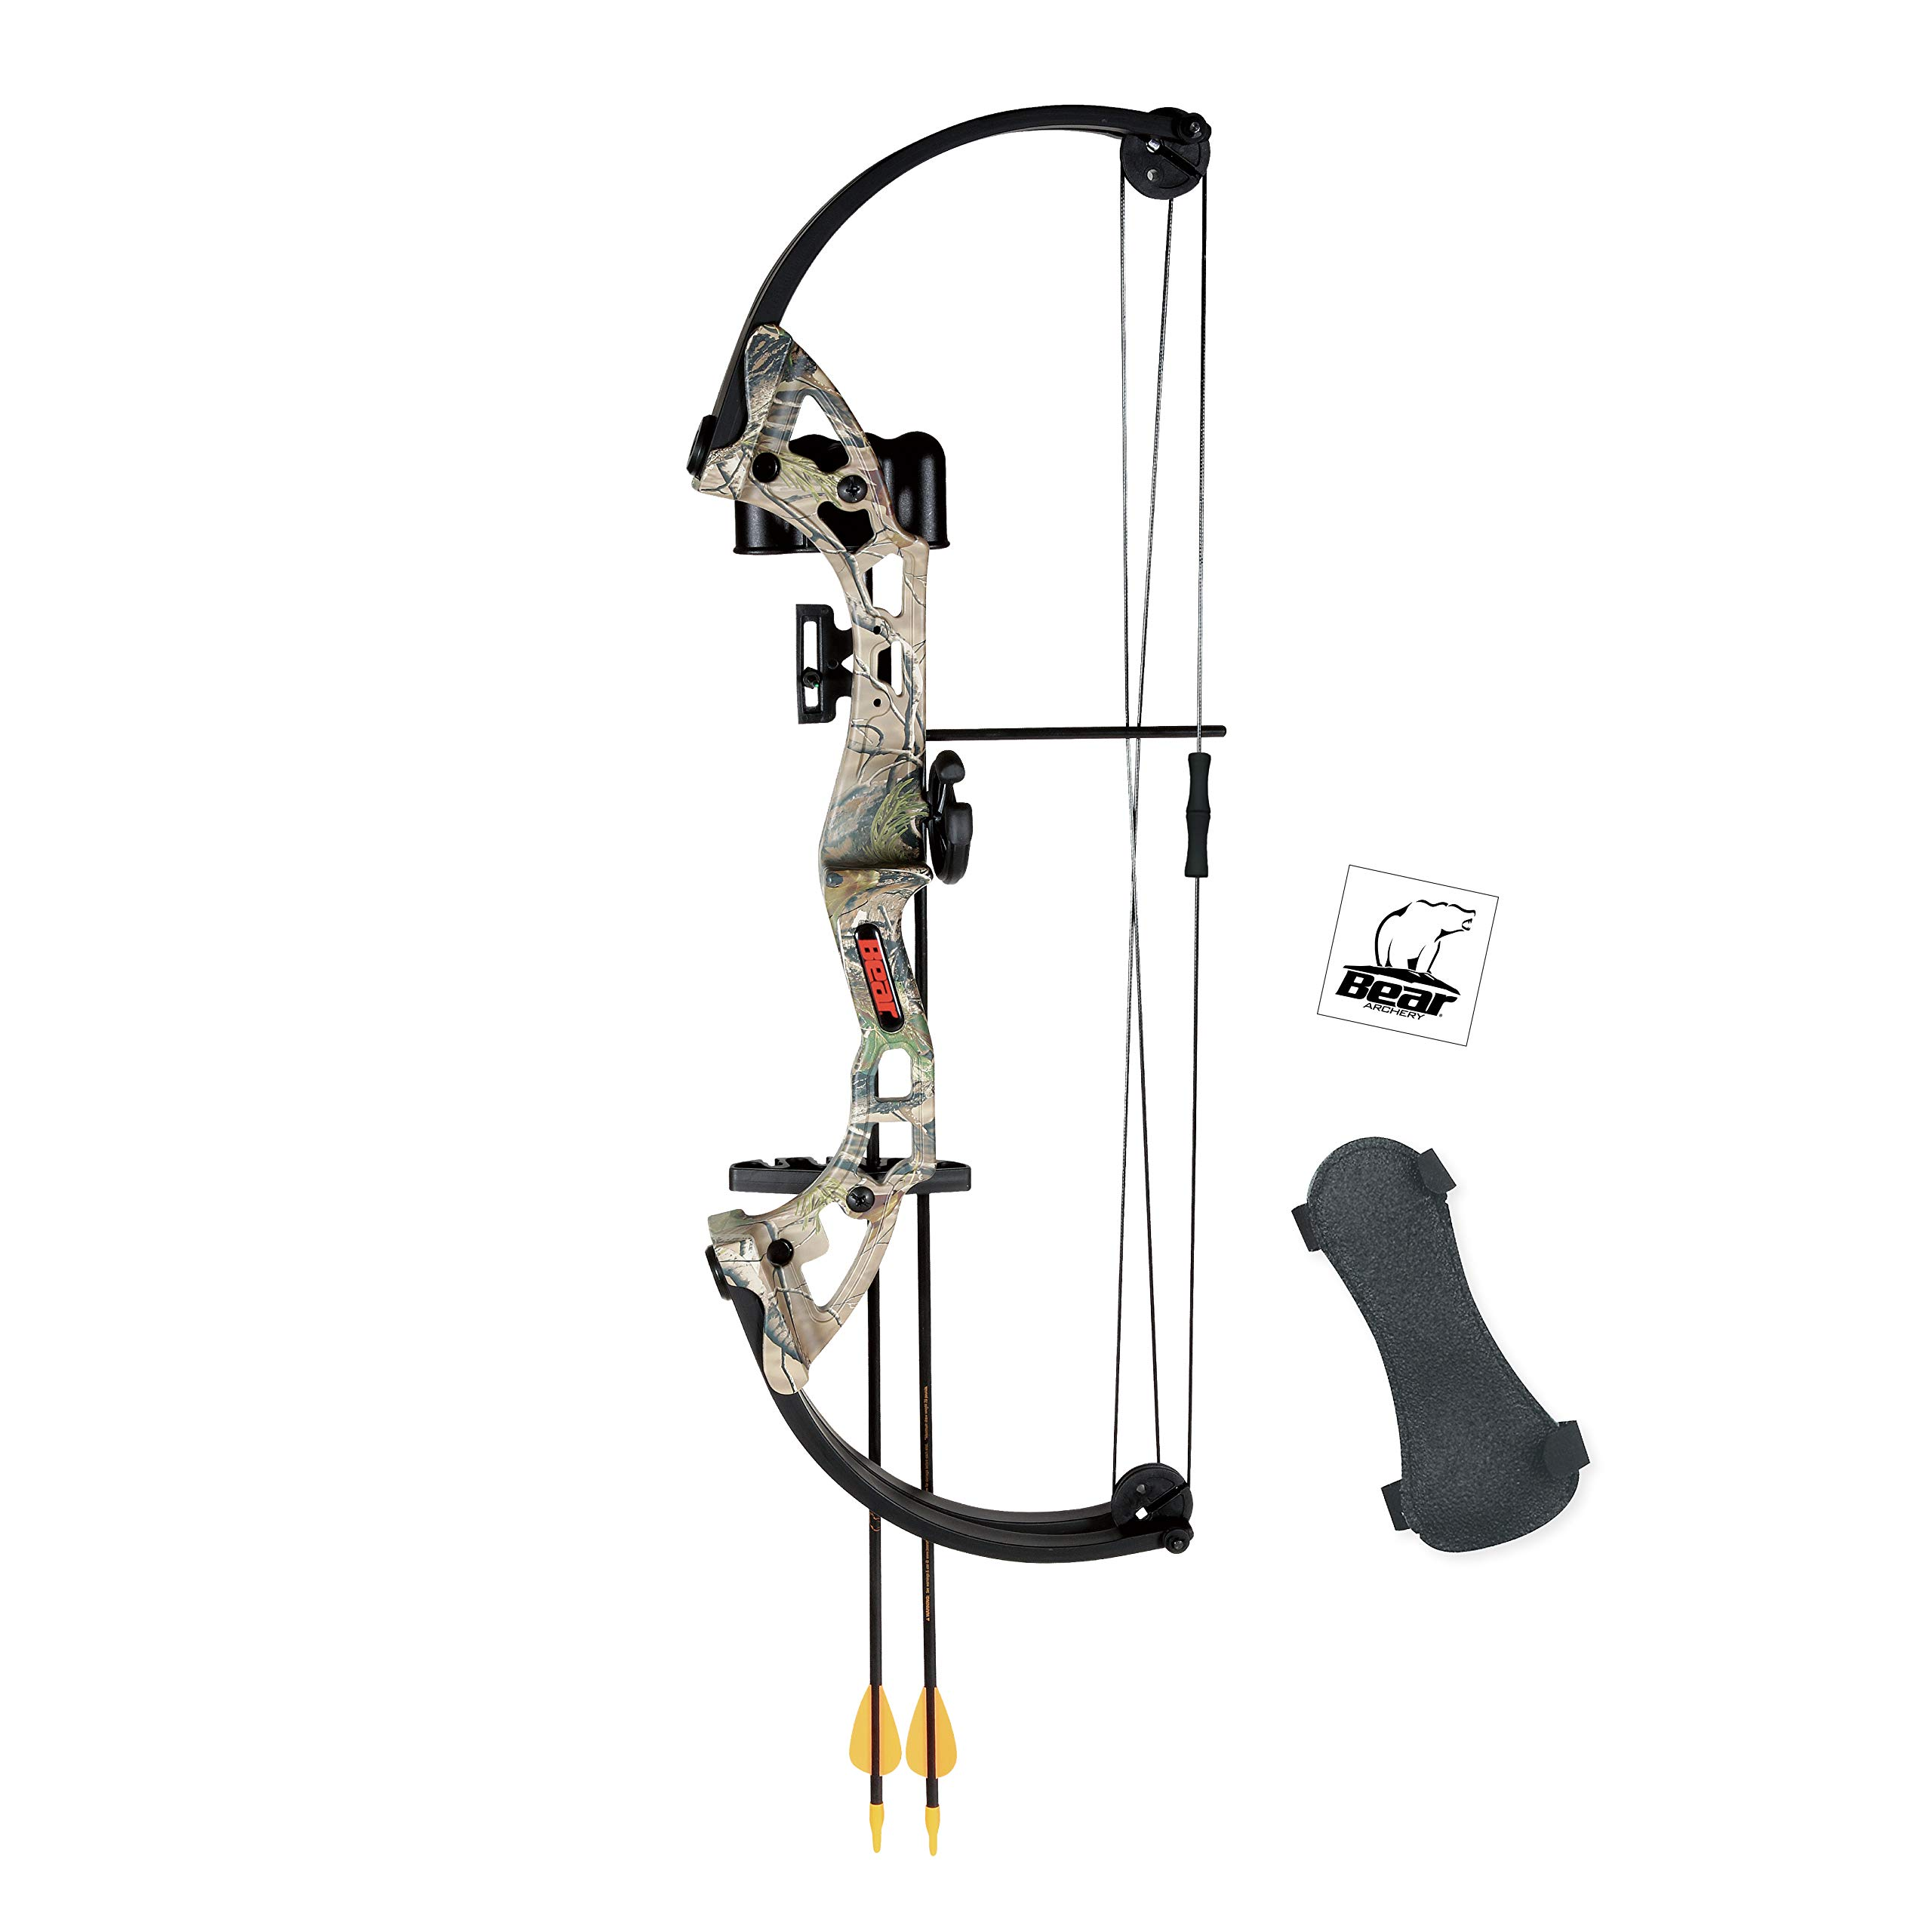 Bear Archery Brave Youth Bow Includes Whisker Biscuit, Arrows, Armguard, and Arrow Quiver Recommended for Ages 8 and Up - Camo by Bear Archery